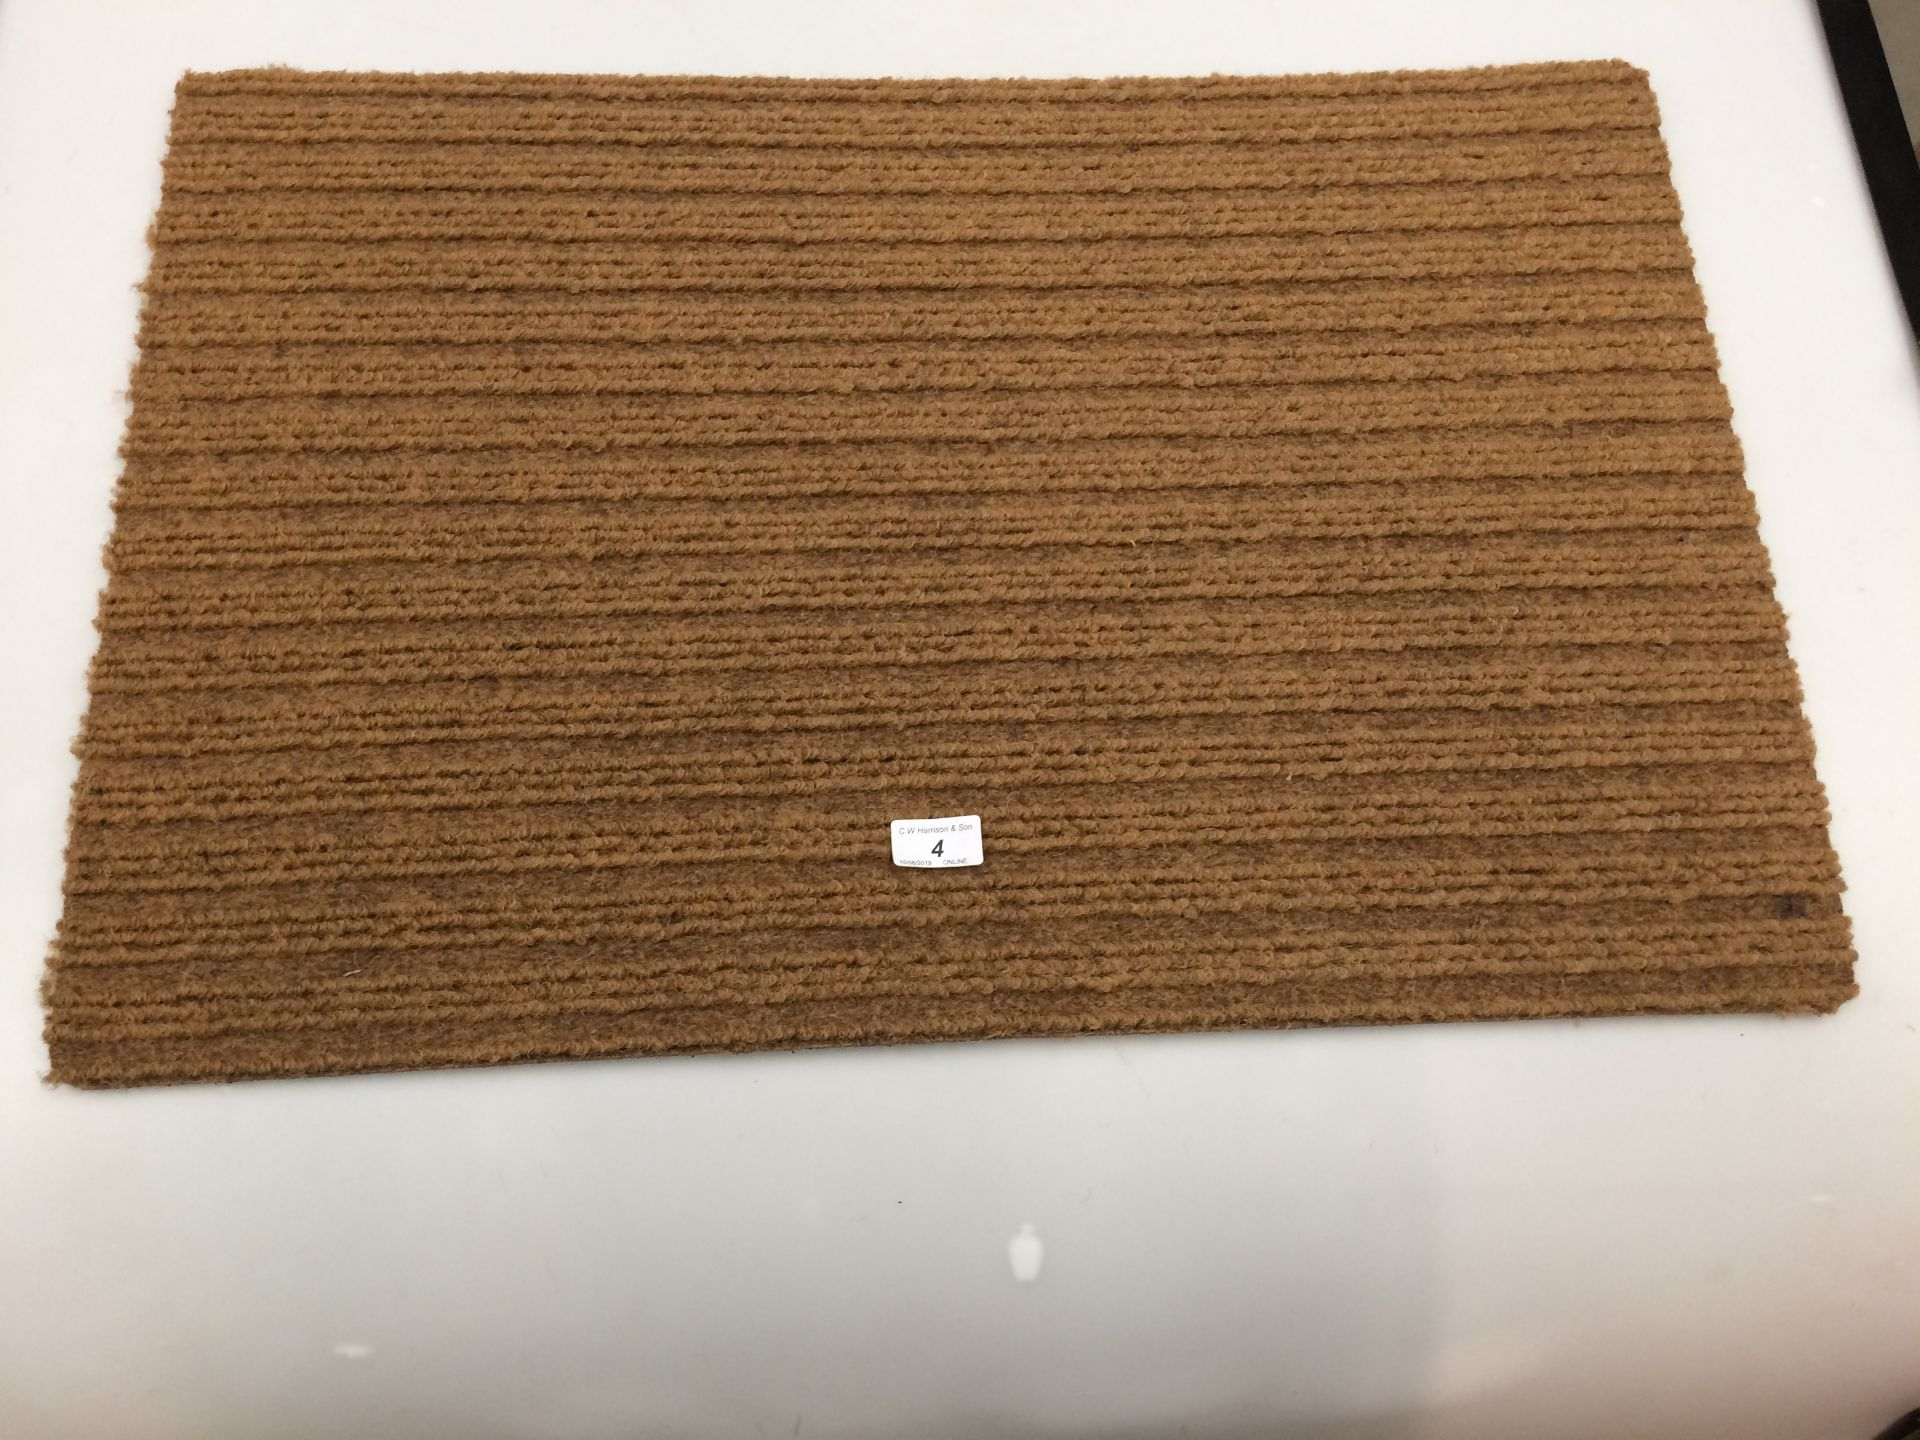 Lot 4 - 10 x brown door mats with rubber anti-slip inlay each 50 x 75cm